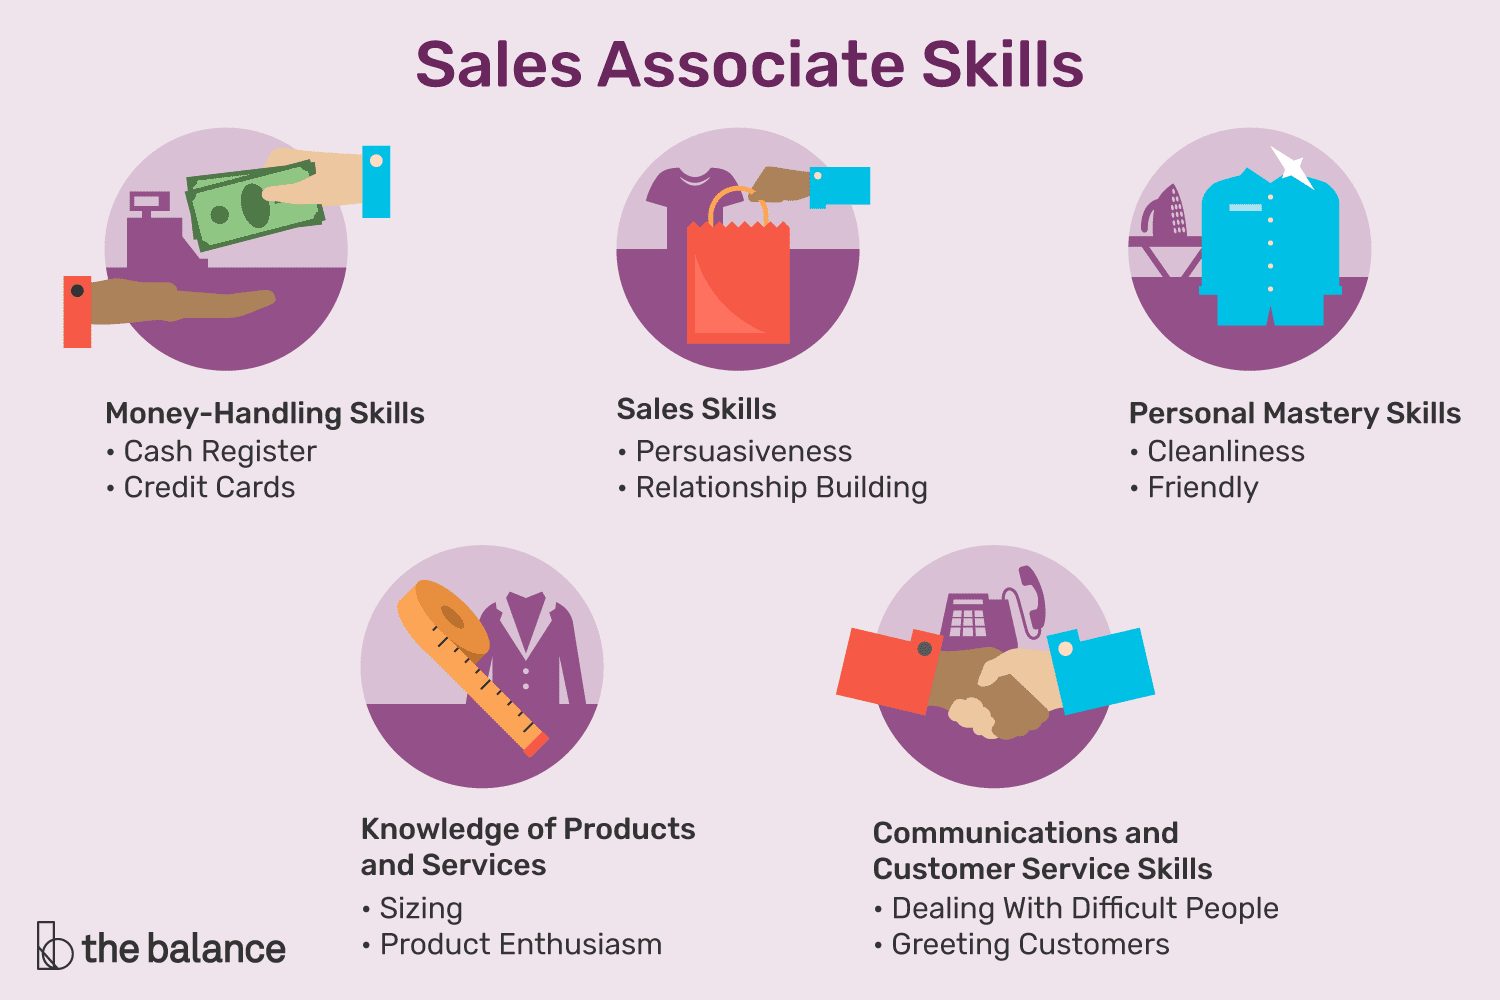 sales associate skills for resumes and cover letters